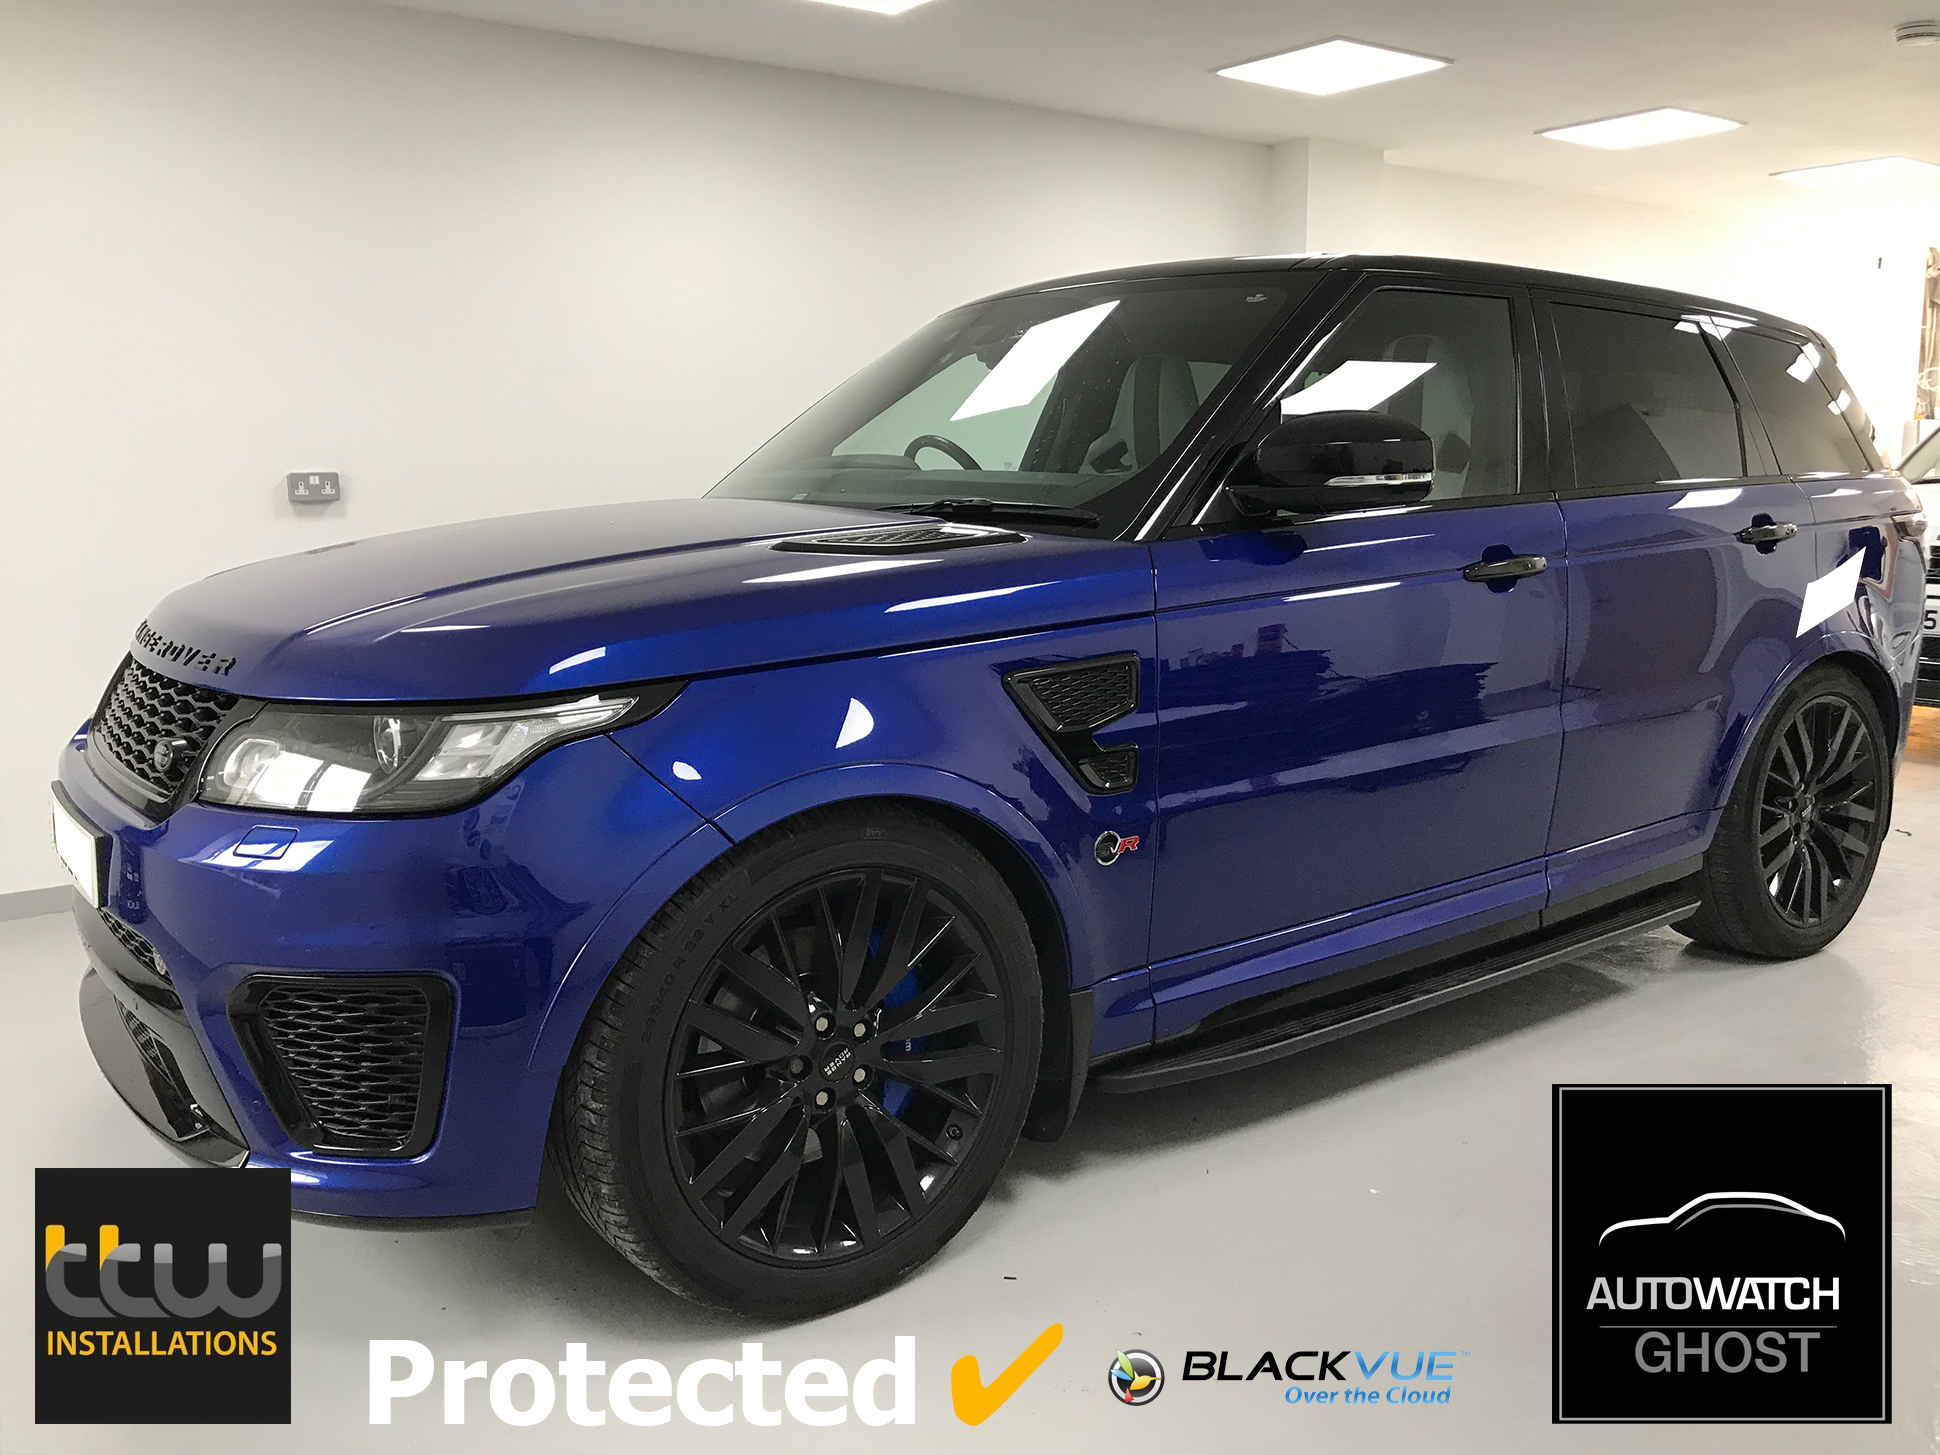 Range Rover Sport SVR Autowatch Ghost 2 protected By TTW Installations